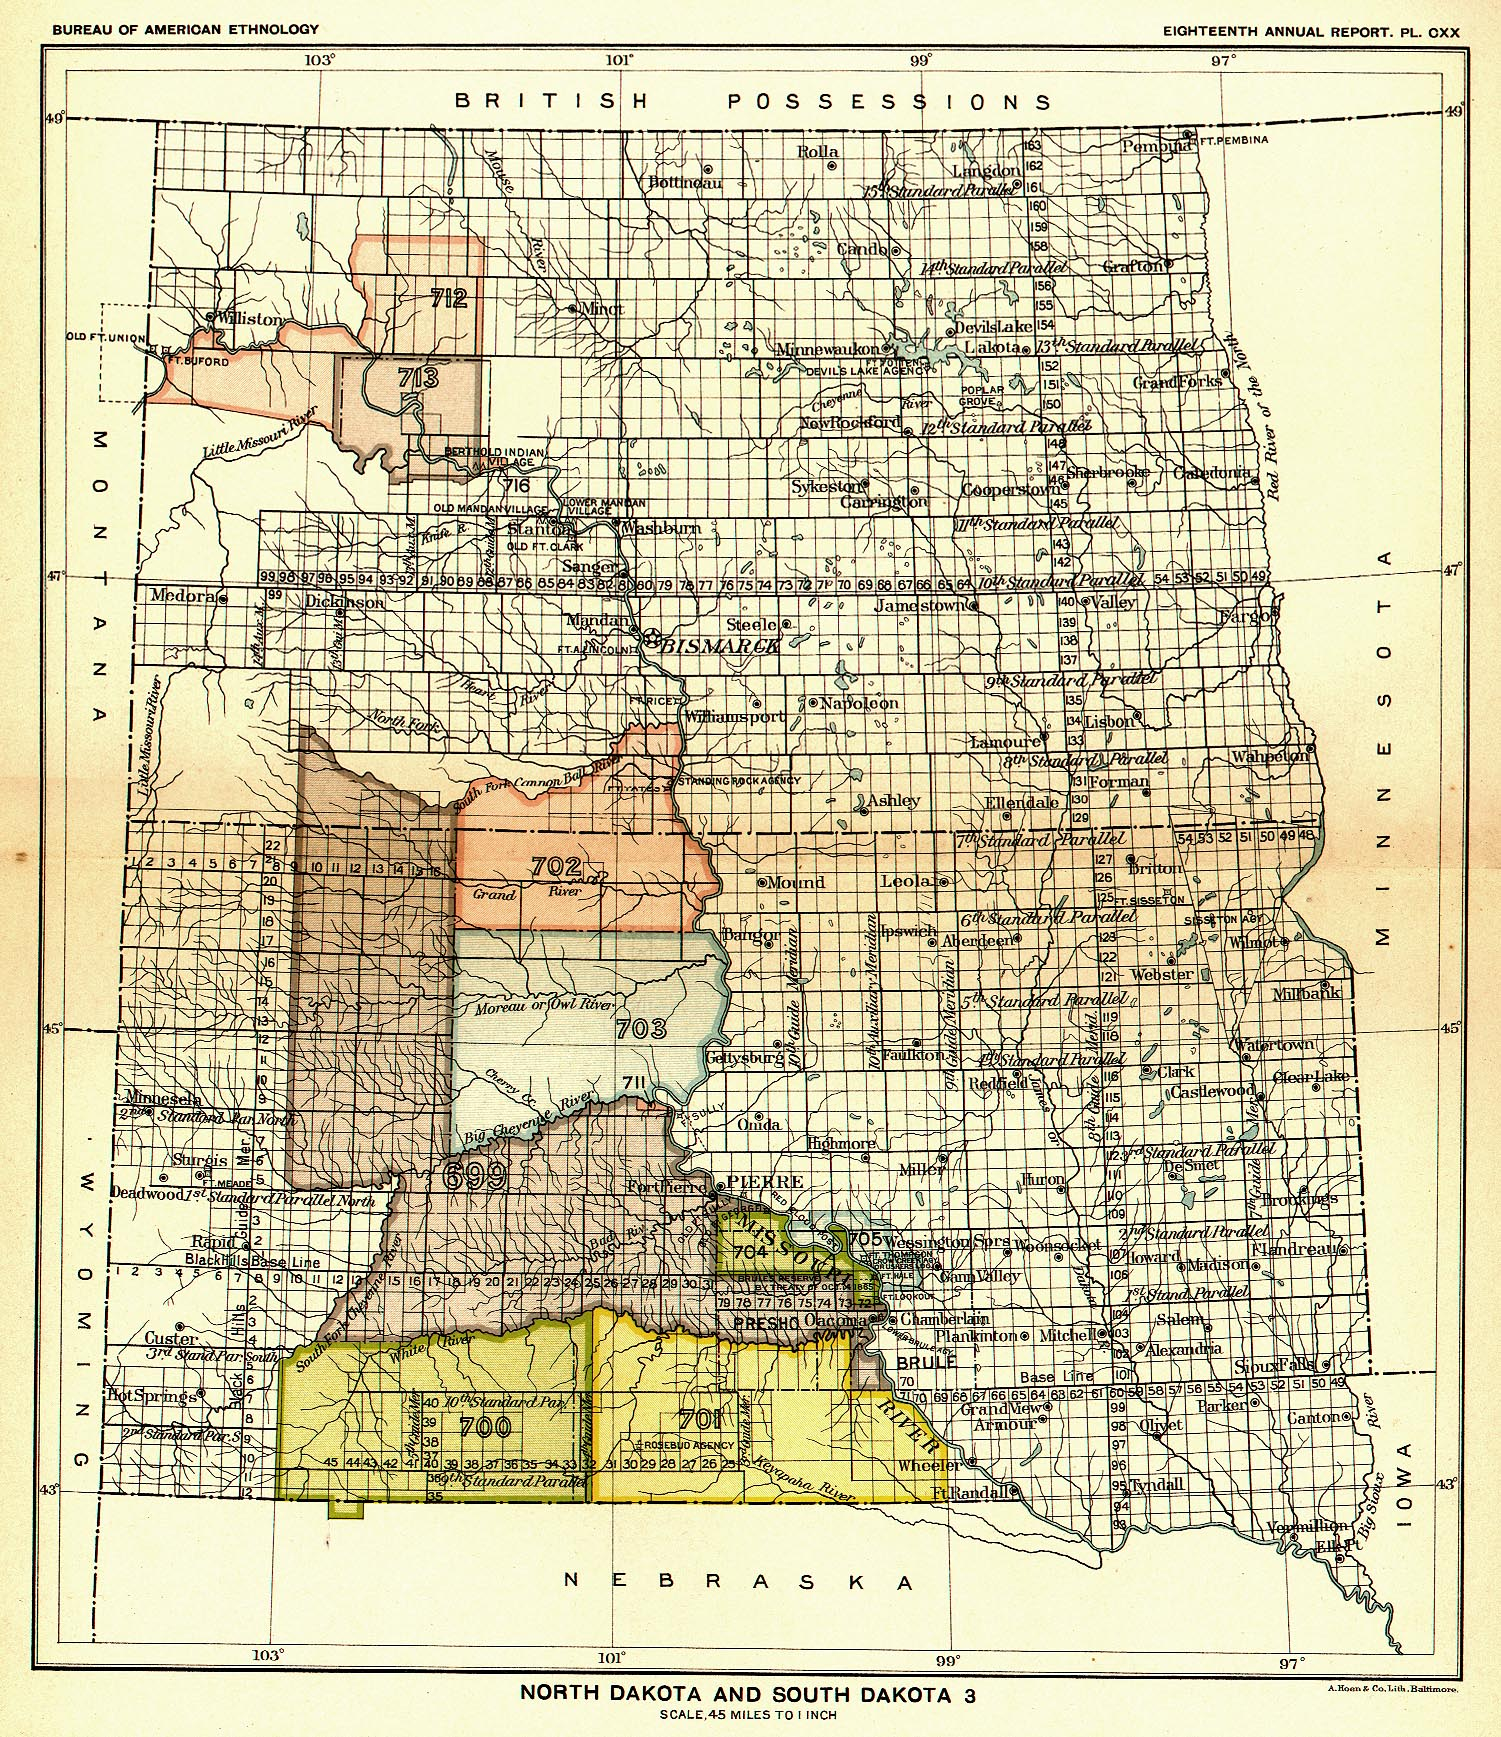 Indian Land Cessions In The U S North Dakota And South Dakota - Us north south map